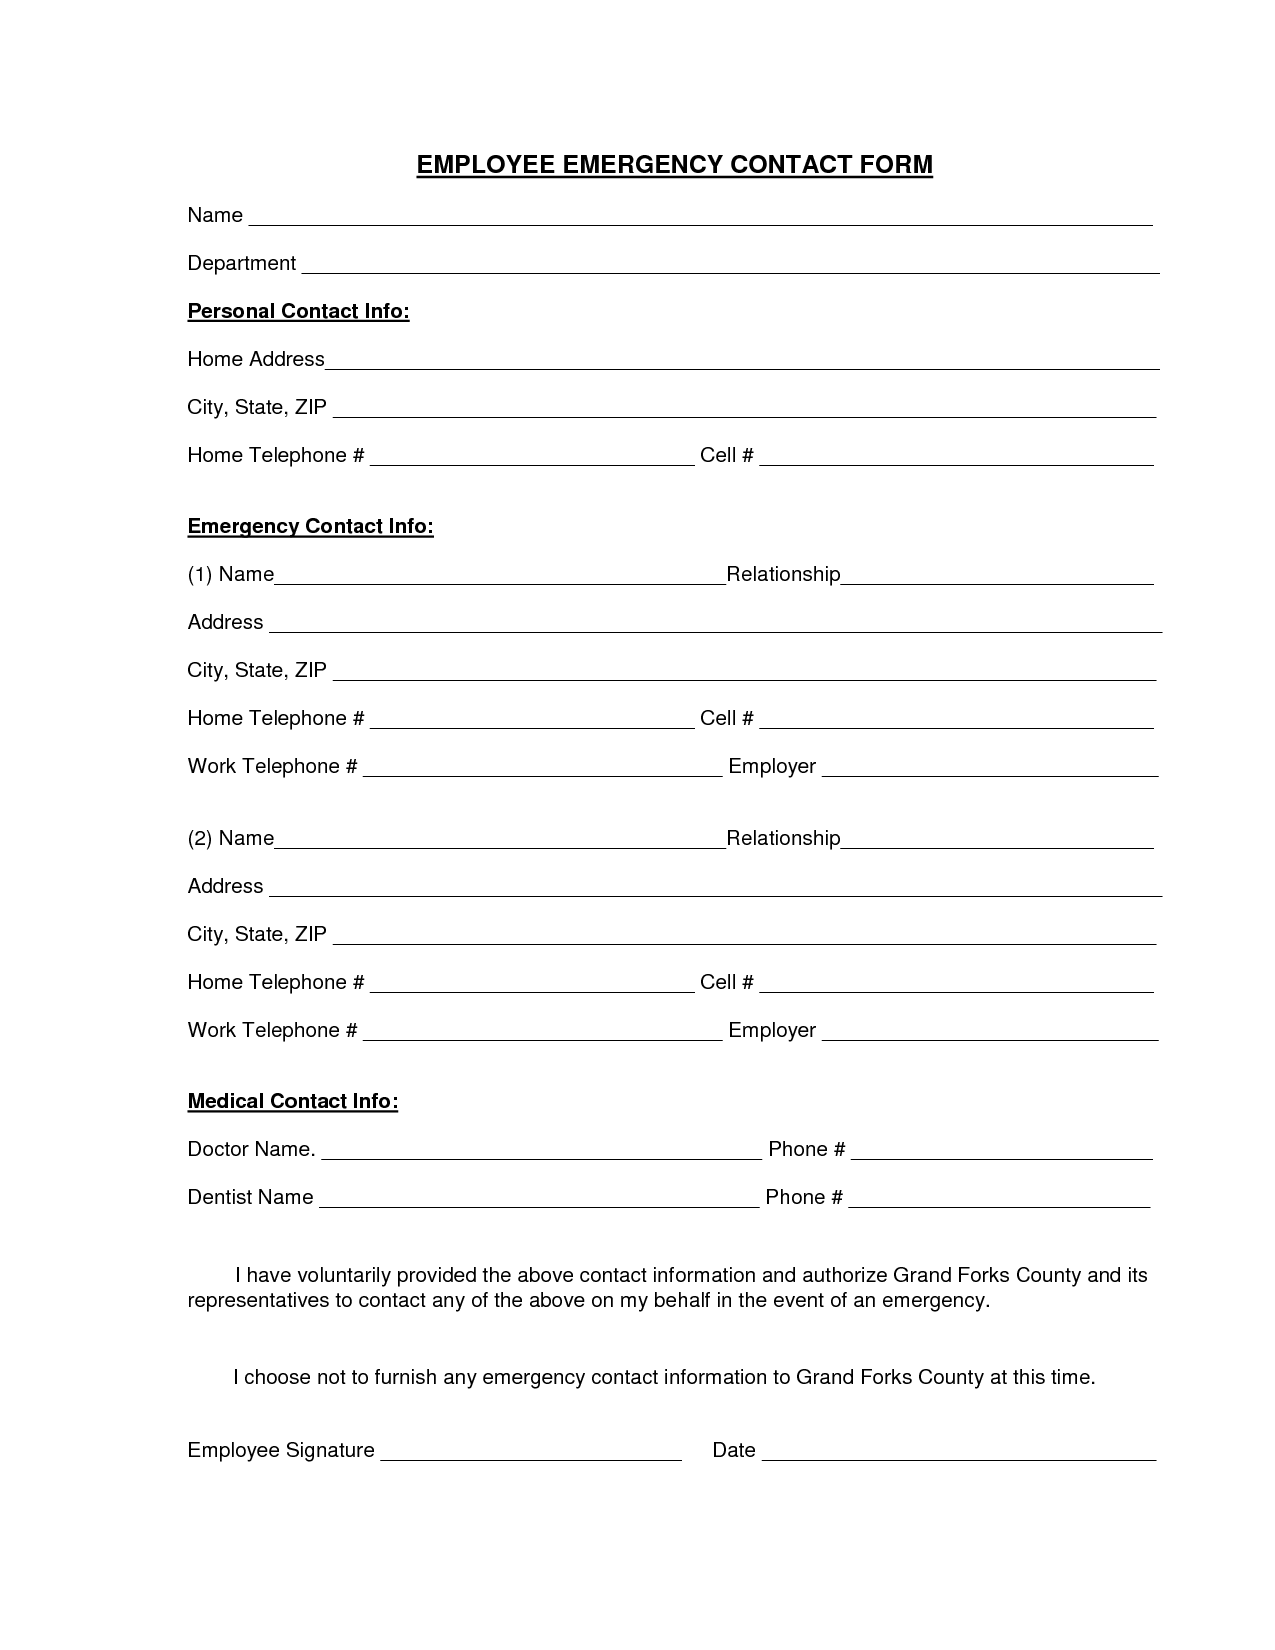 Contact Information Form Template internship proposal example